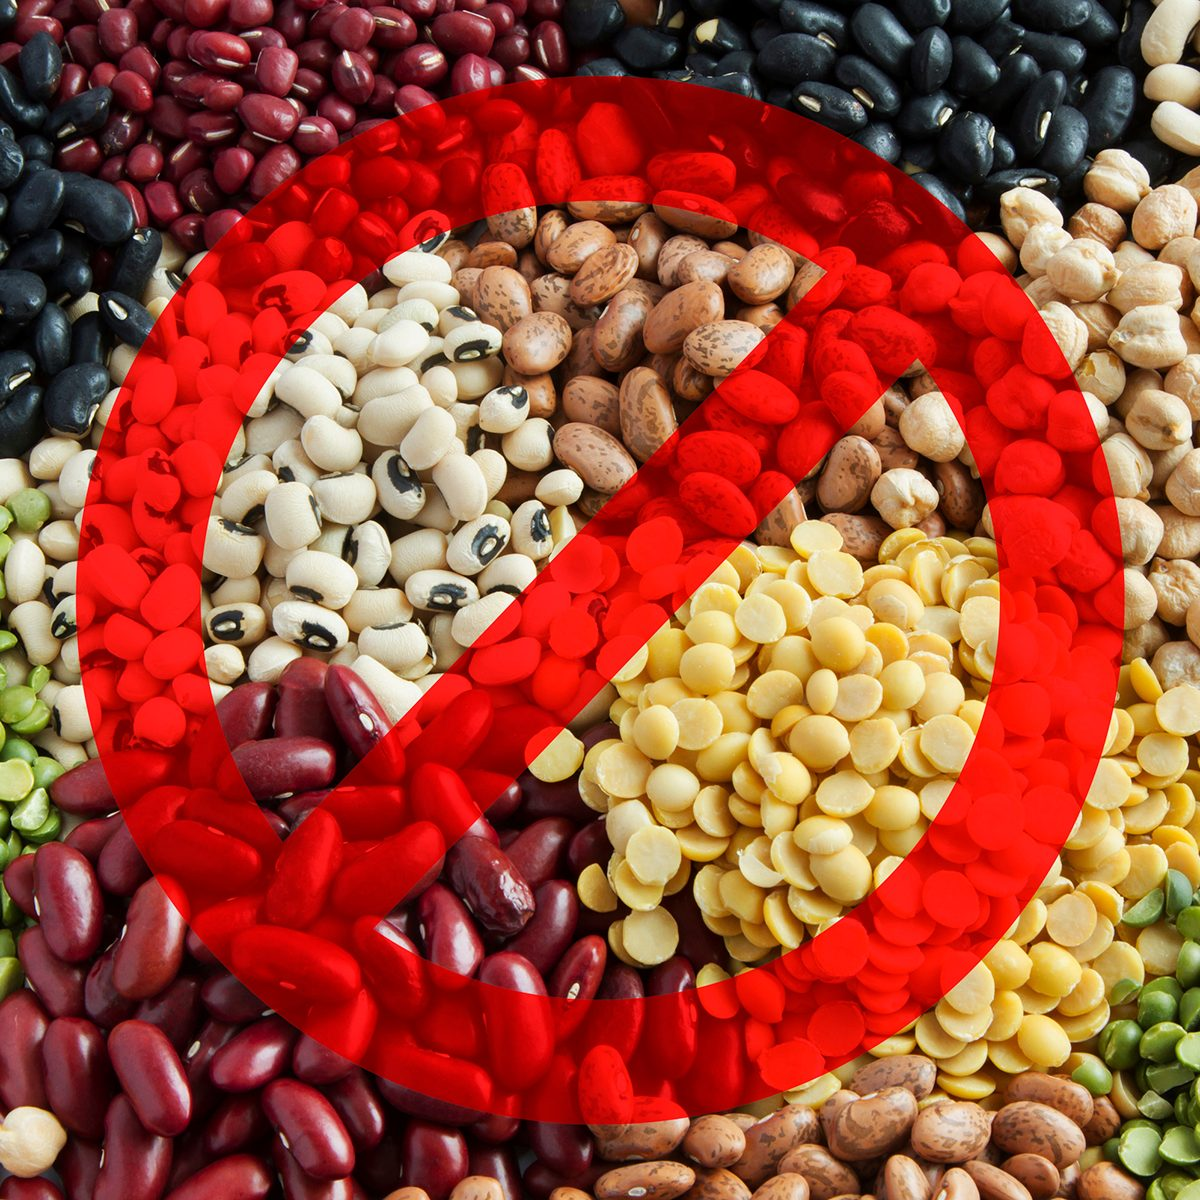 Legumes with the no symbol over them